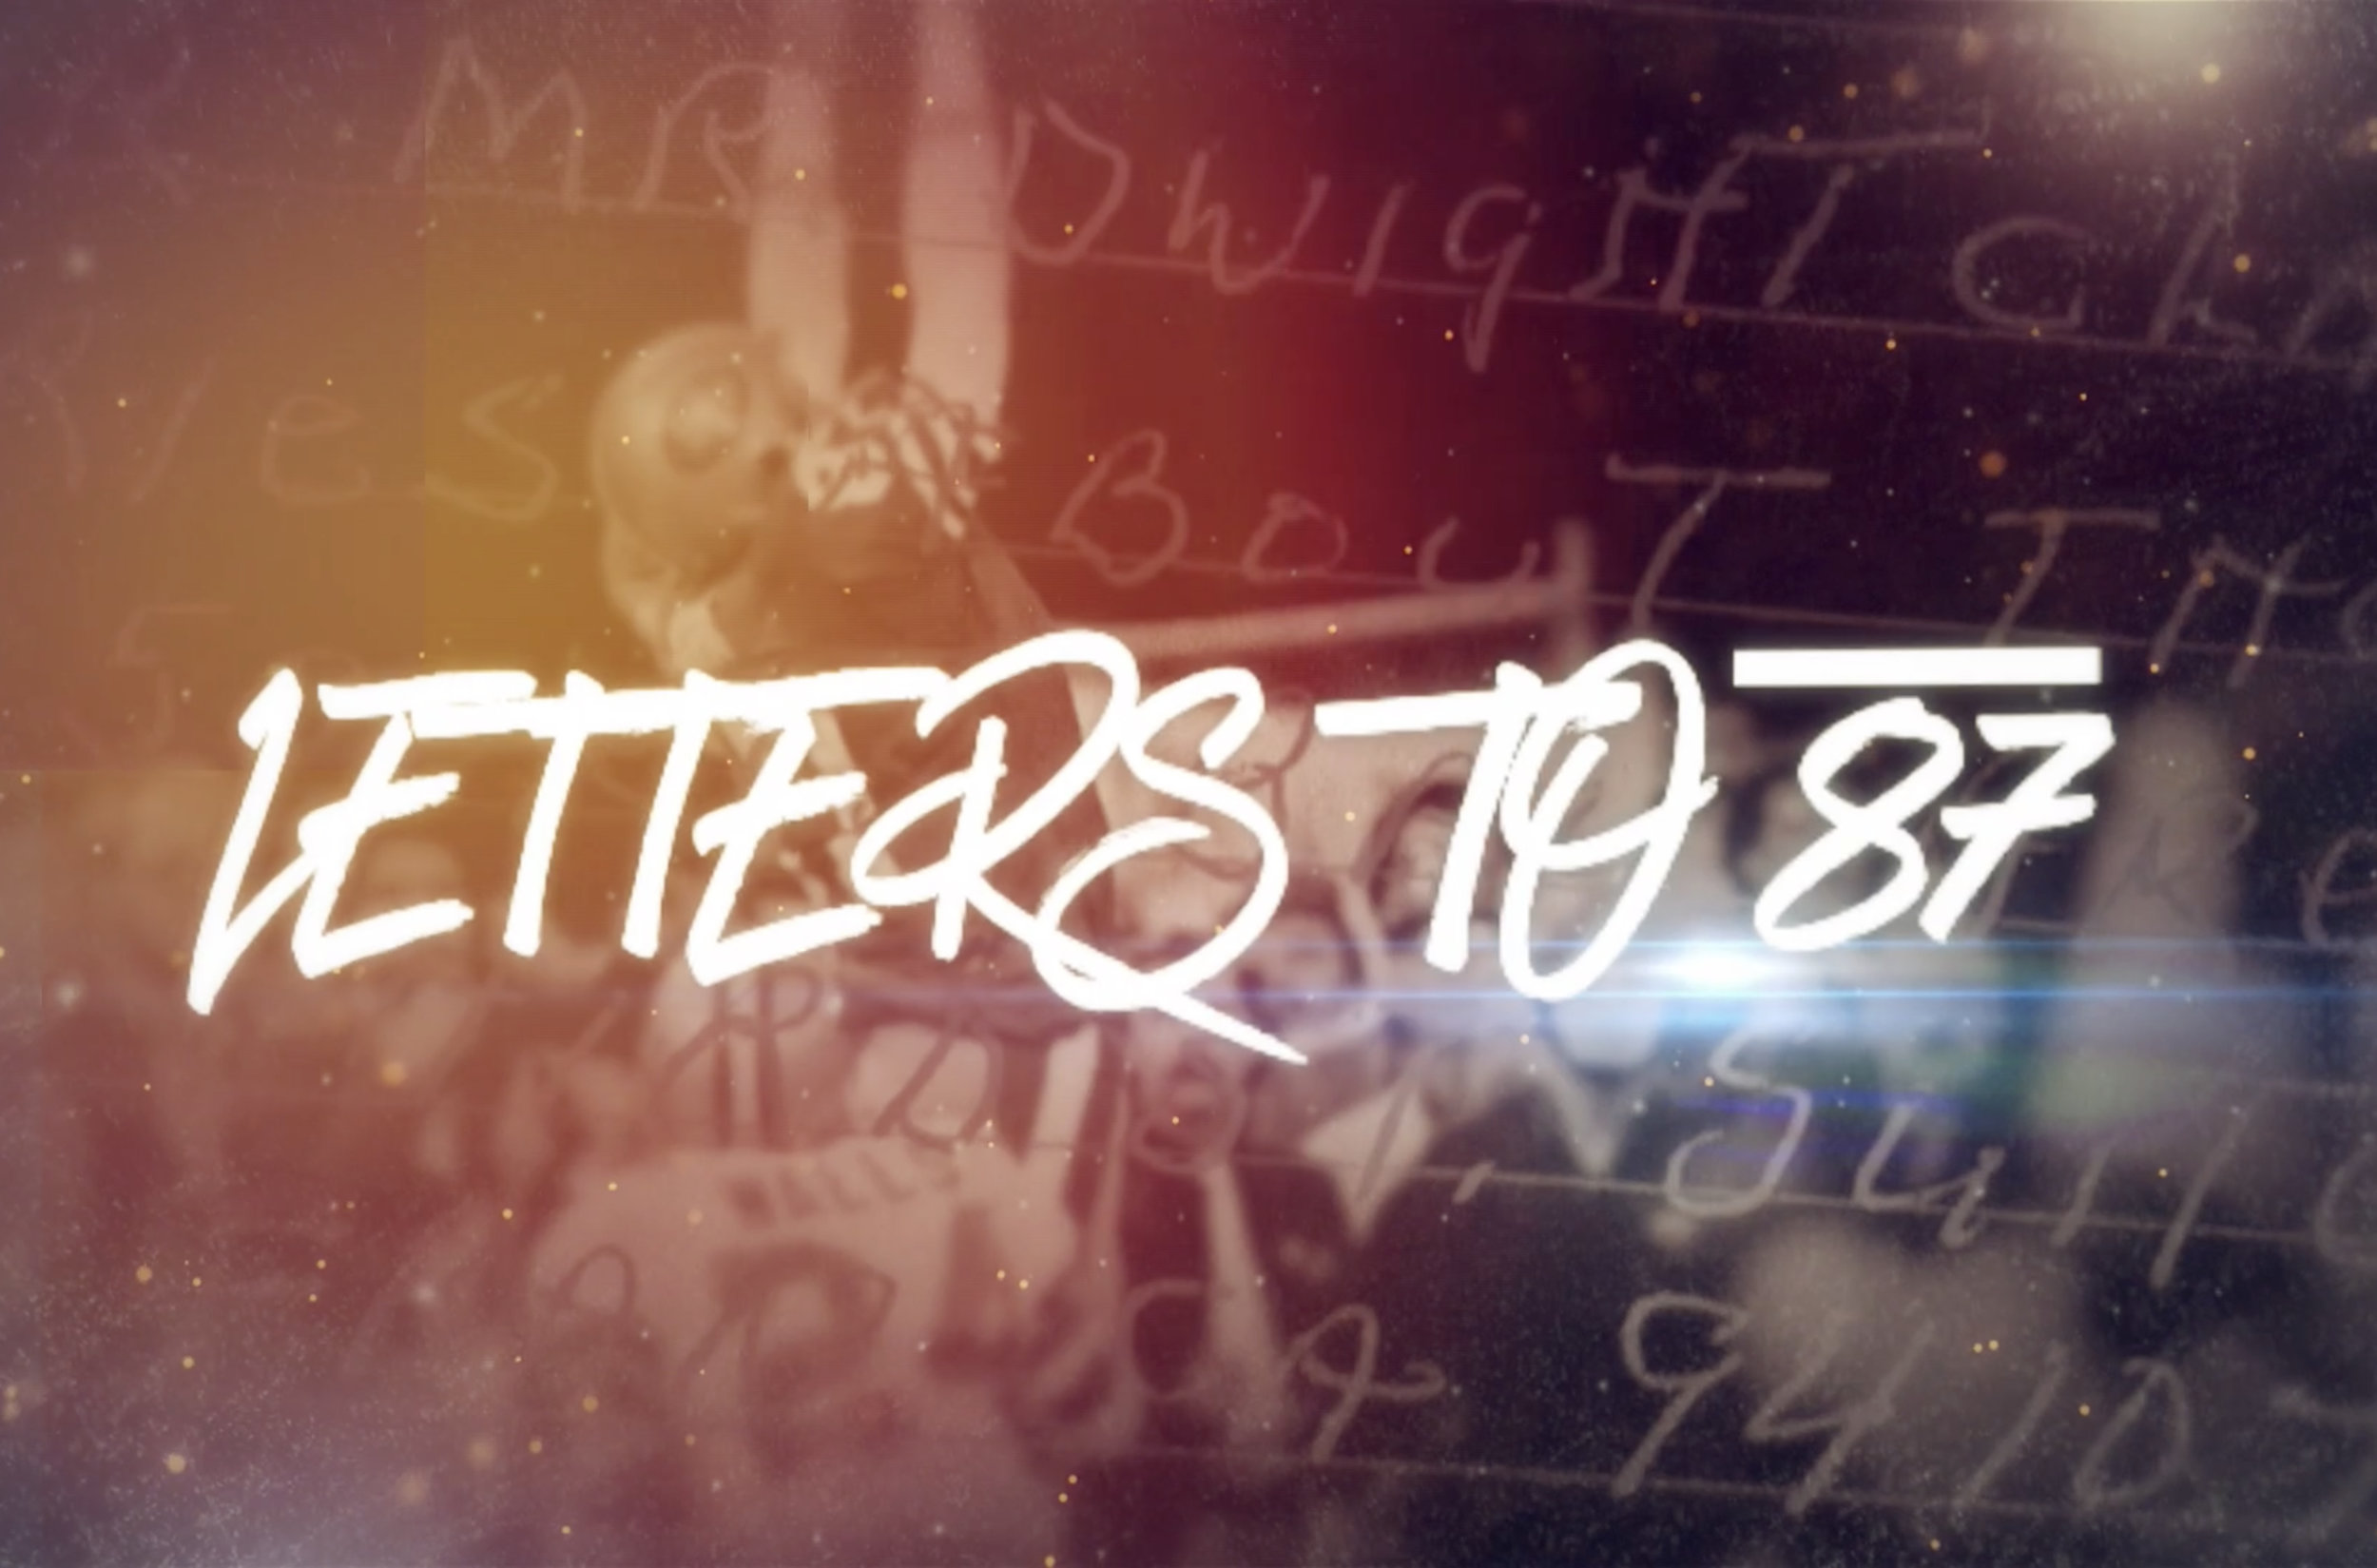 Watch Letters to 87 — a special tribute to 49ers legend Dwight Clark - This book was inspired by the NBC Sports Bay Area documentary, Letters to 87.